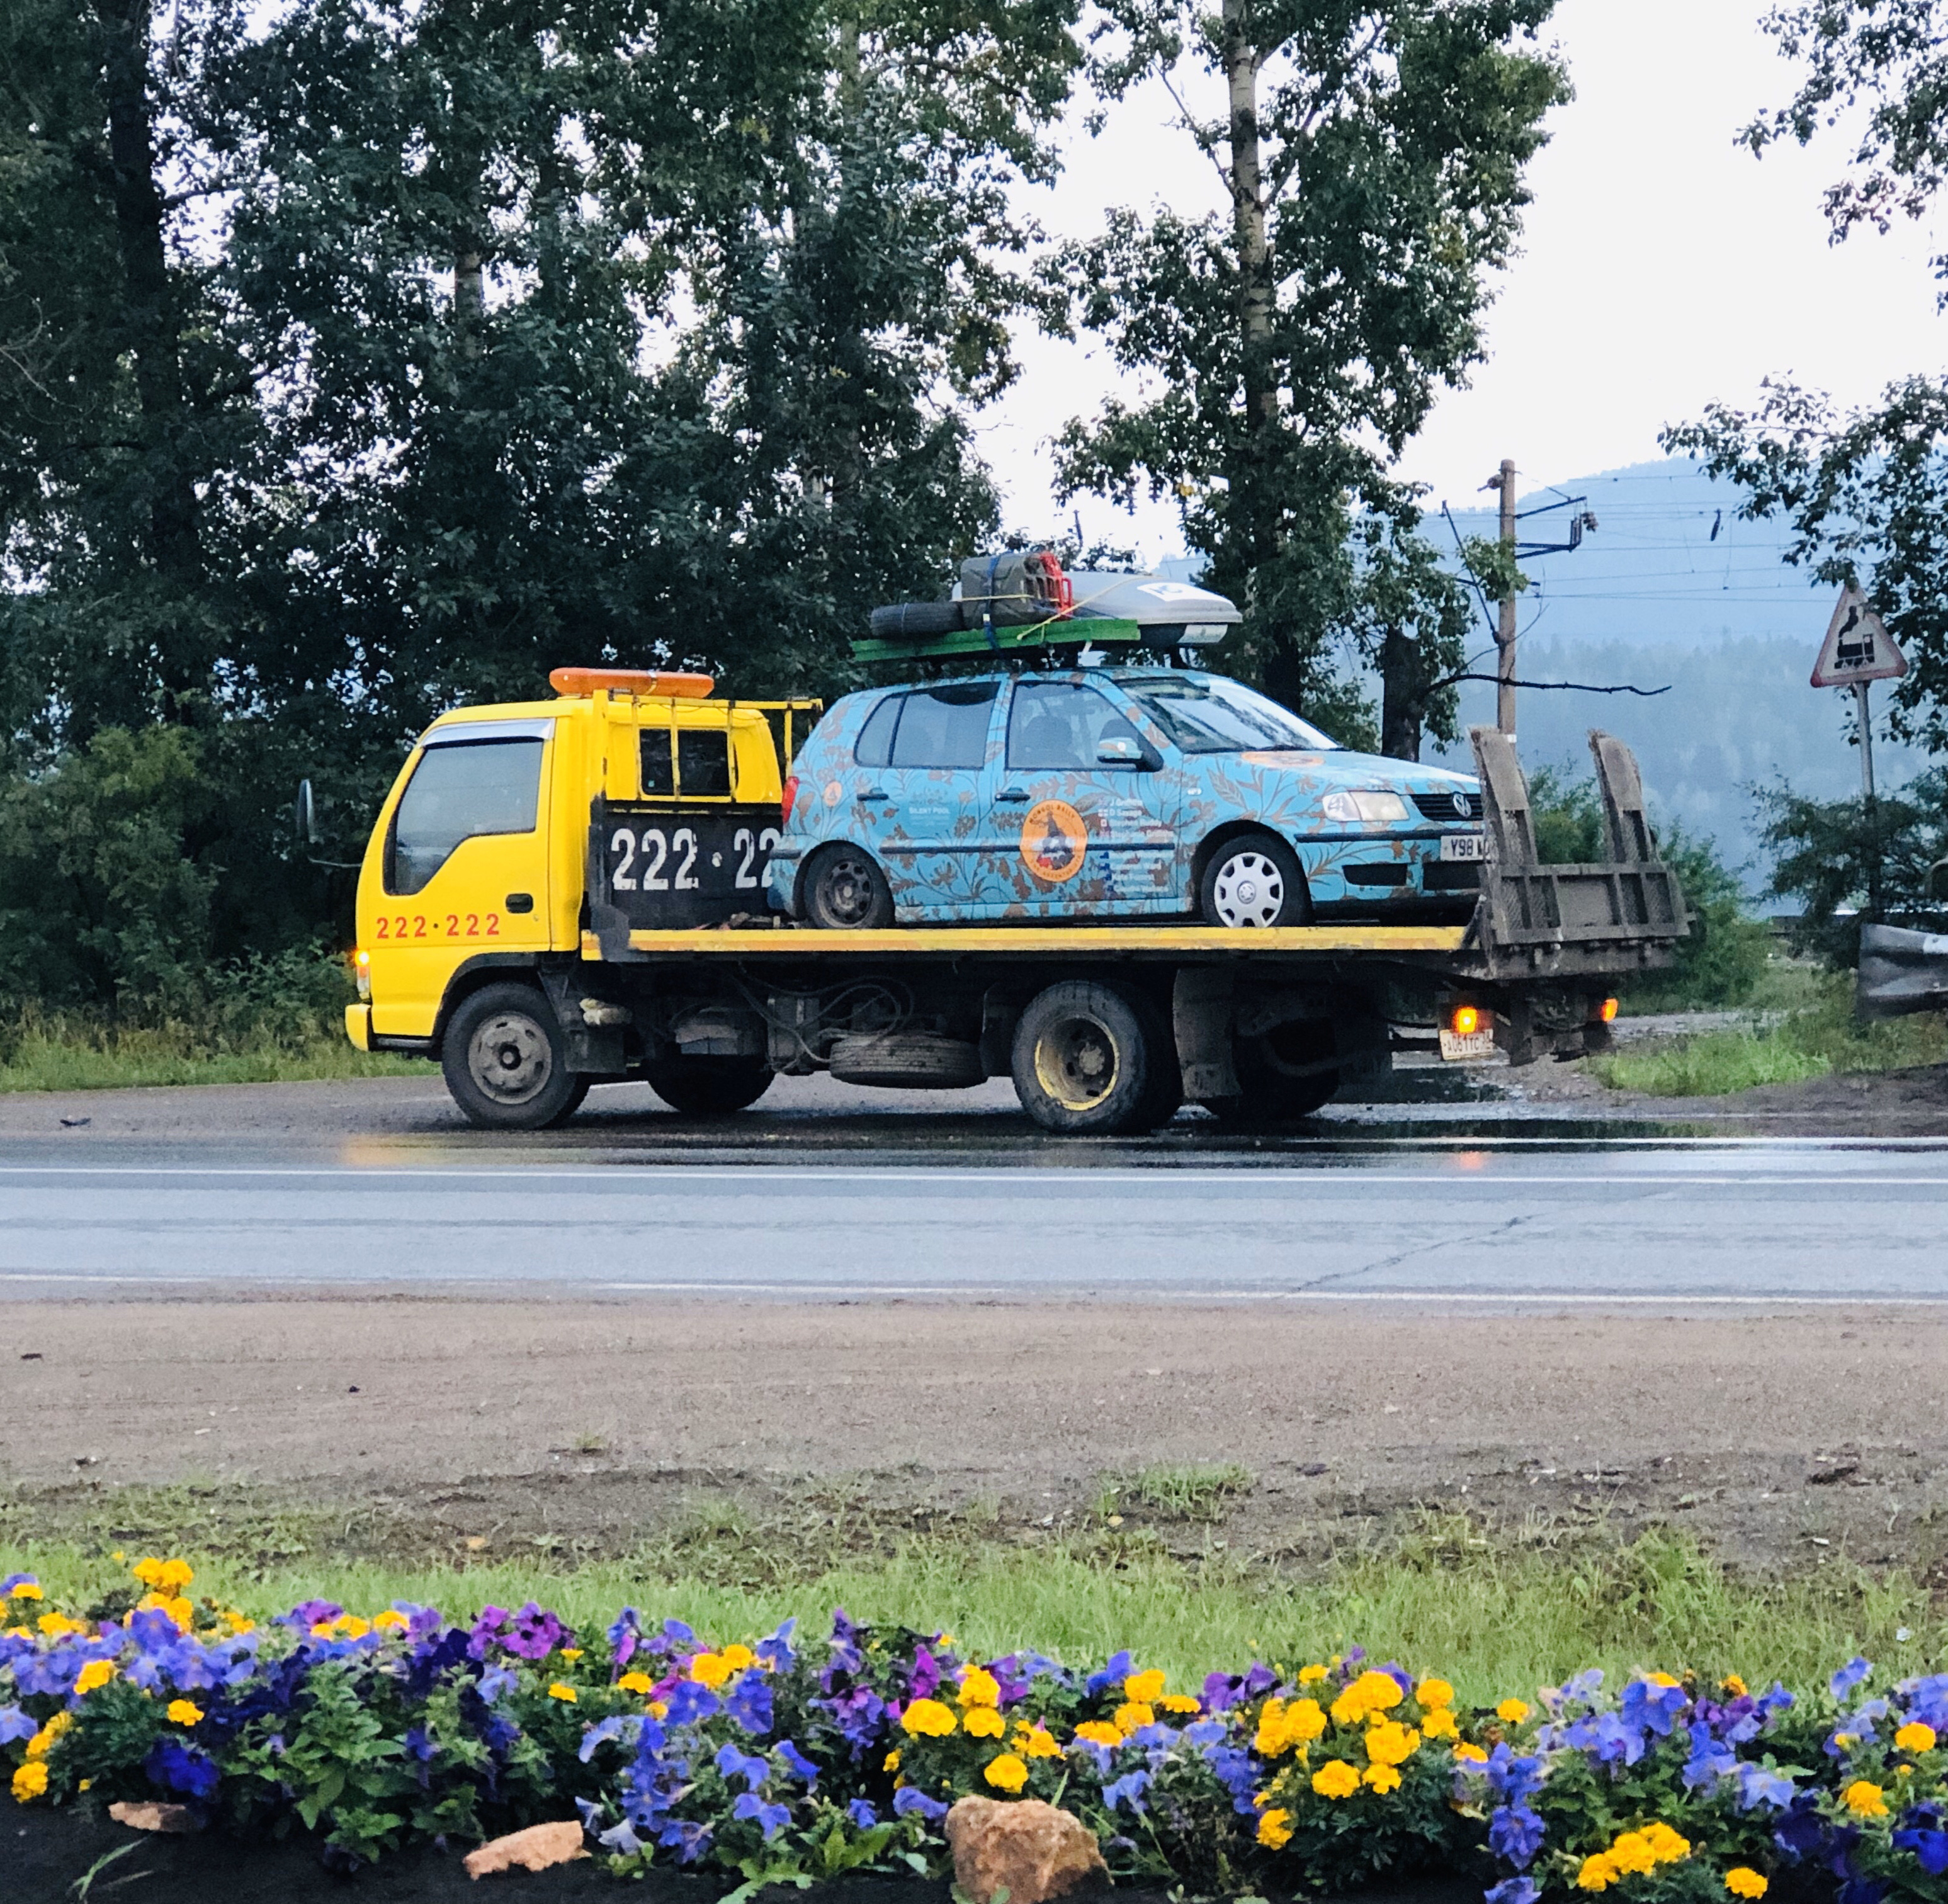 Blog 1 - Day 1 and 60km of driving, first tow